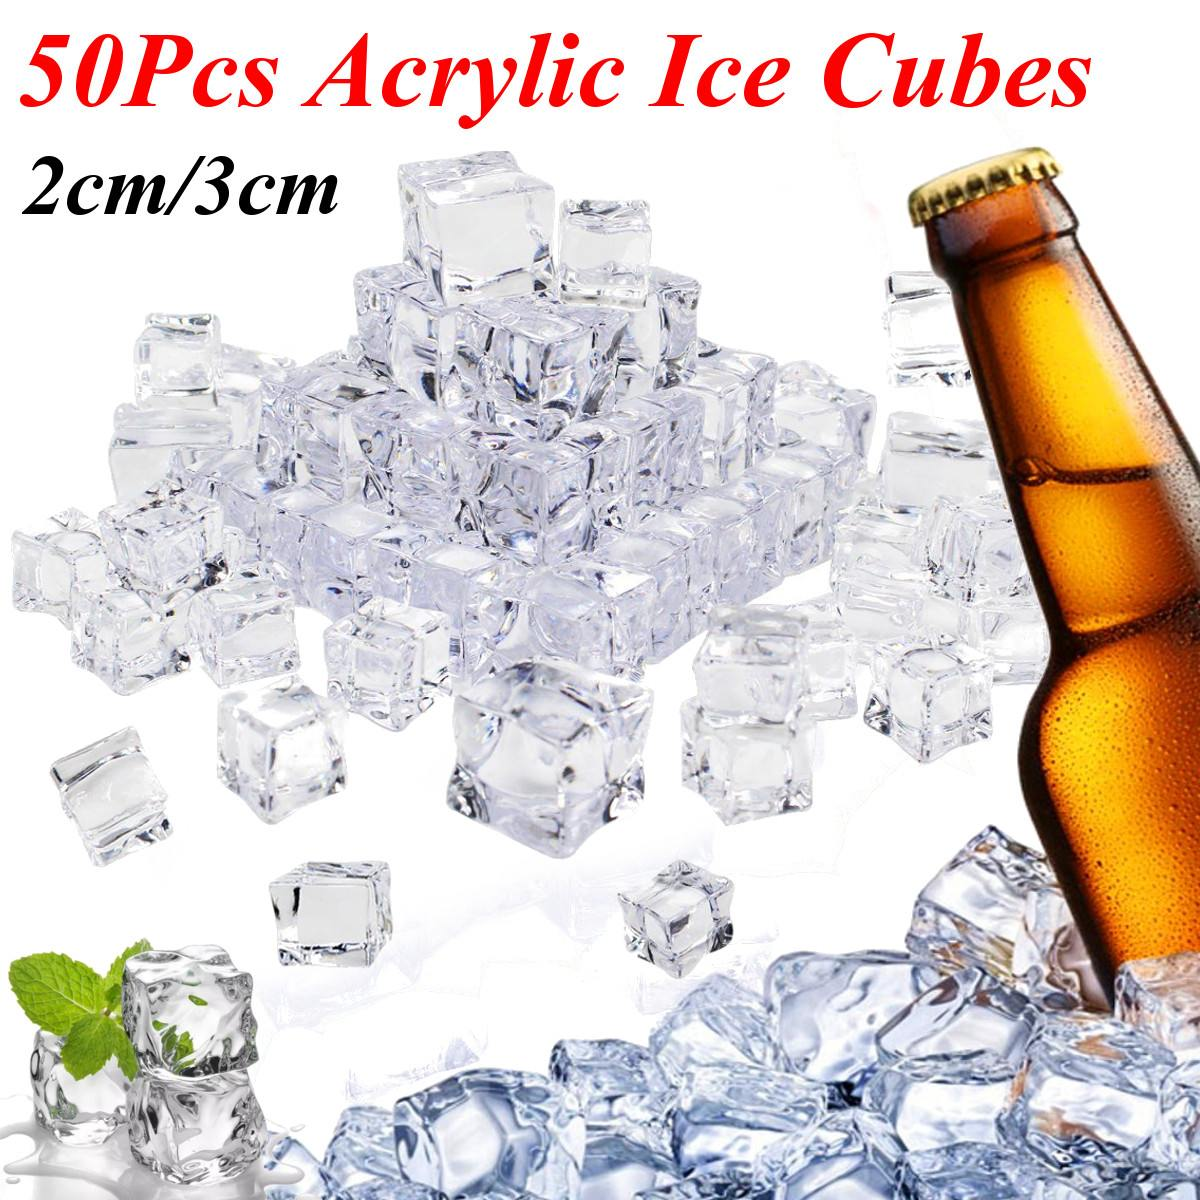 50Pcs Cube Square Shape Glass Luster Ice Cubes Fake Artificial Acrylic Ice Cubes Crystal Clear Photography Props Kitchen Decor50Pcs Cube Square Shape Glass Luster Ice Cubes Fake Artificial Acrylic Ice Cubes Crystal Clear Photography Props Kitchen Decor